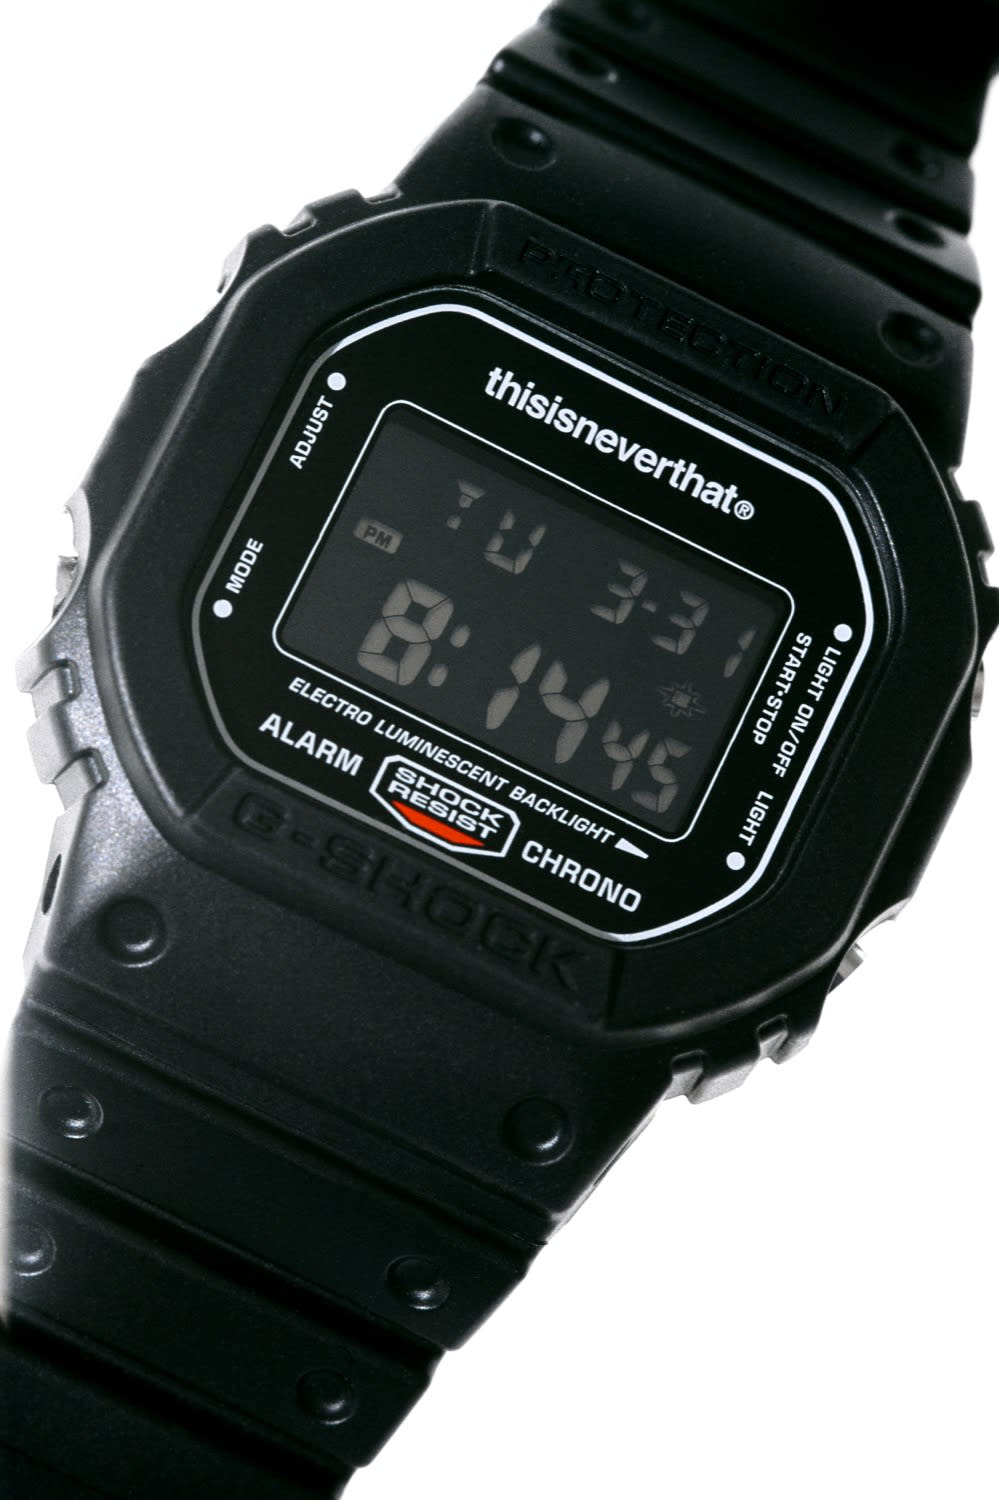 thisisneverthat x G-Shock 5600 Watch & Logo Tee - DW5600TNT-1DR